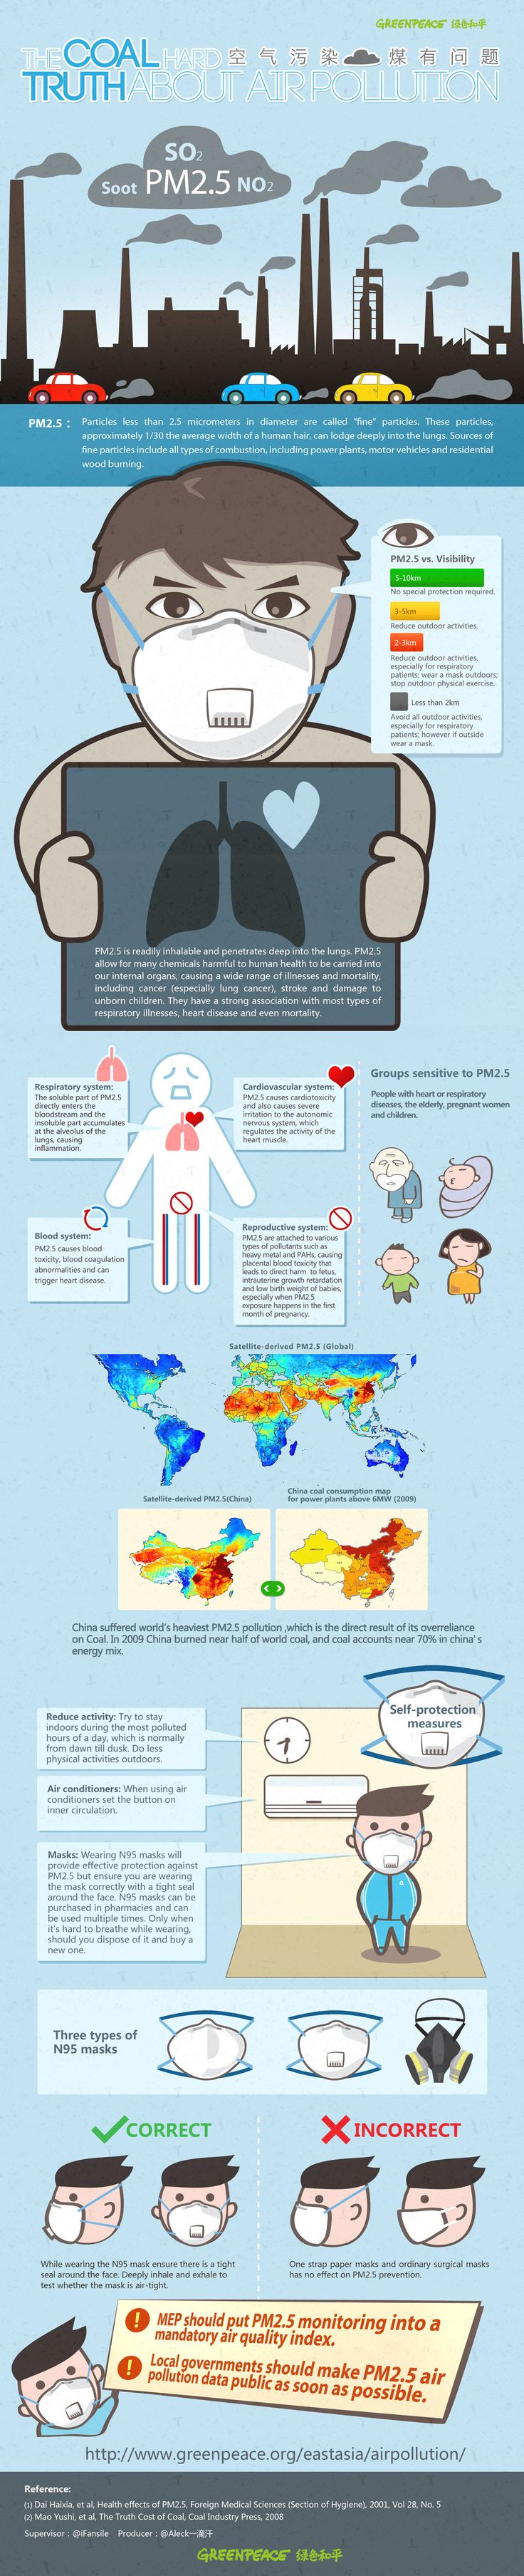 Air pollution and coal consumption - China (useful information on PM2.5 - what it means for your health)